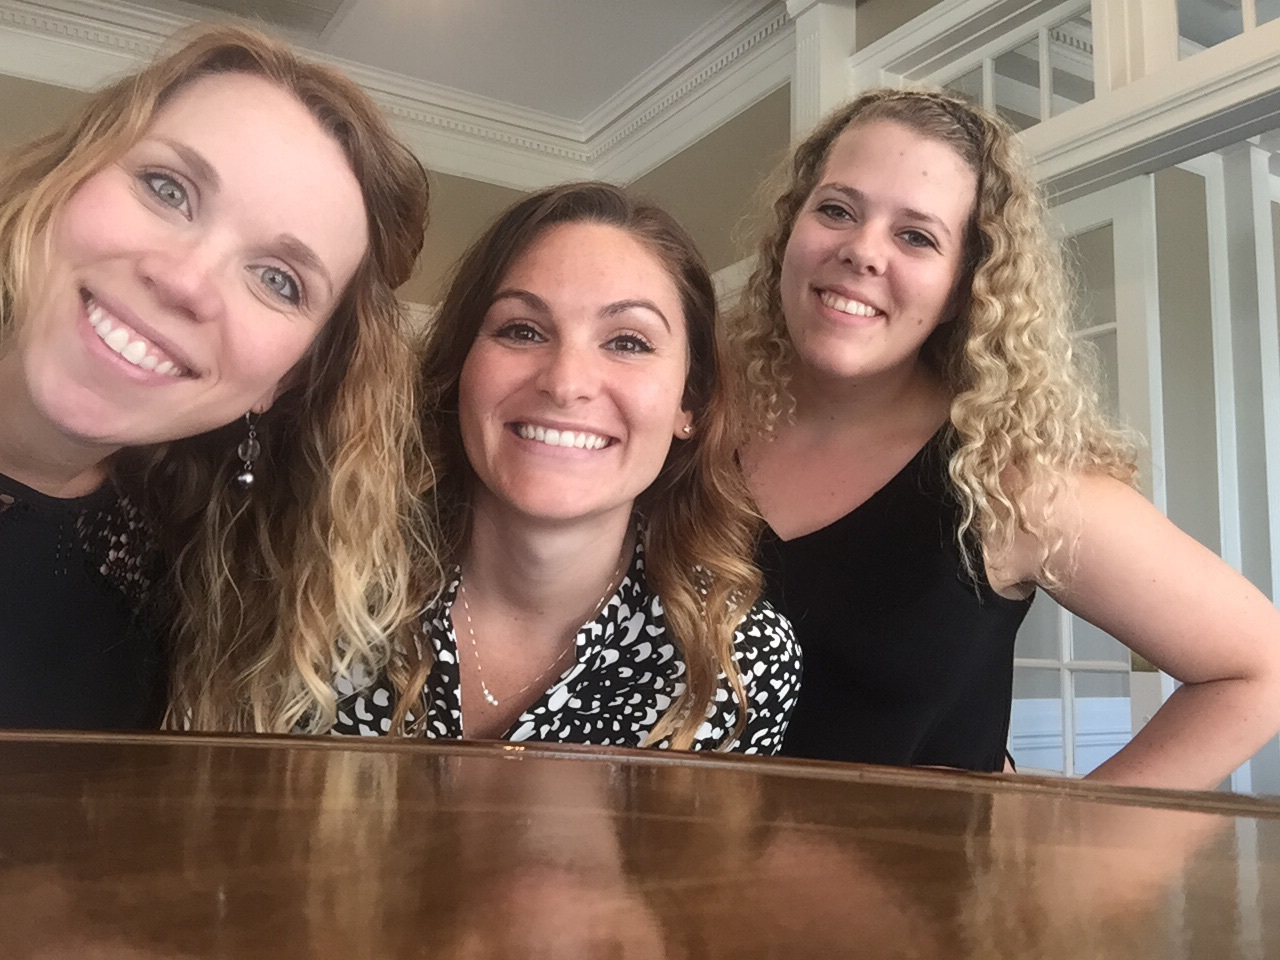 Lastly, I must thank my beautiful assistants, Amanda and Kelsey. Those two did a lot of the running around because I could not. No one does this job alone and I know I'm only successful because of people like them.